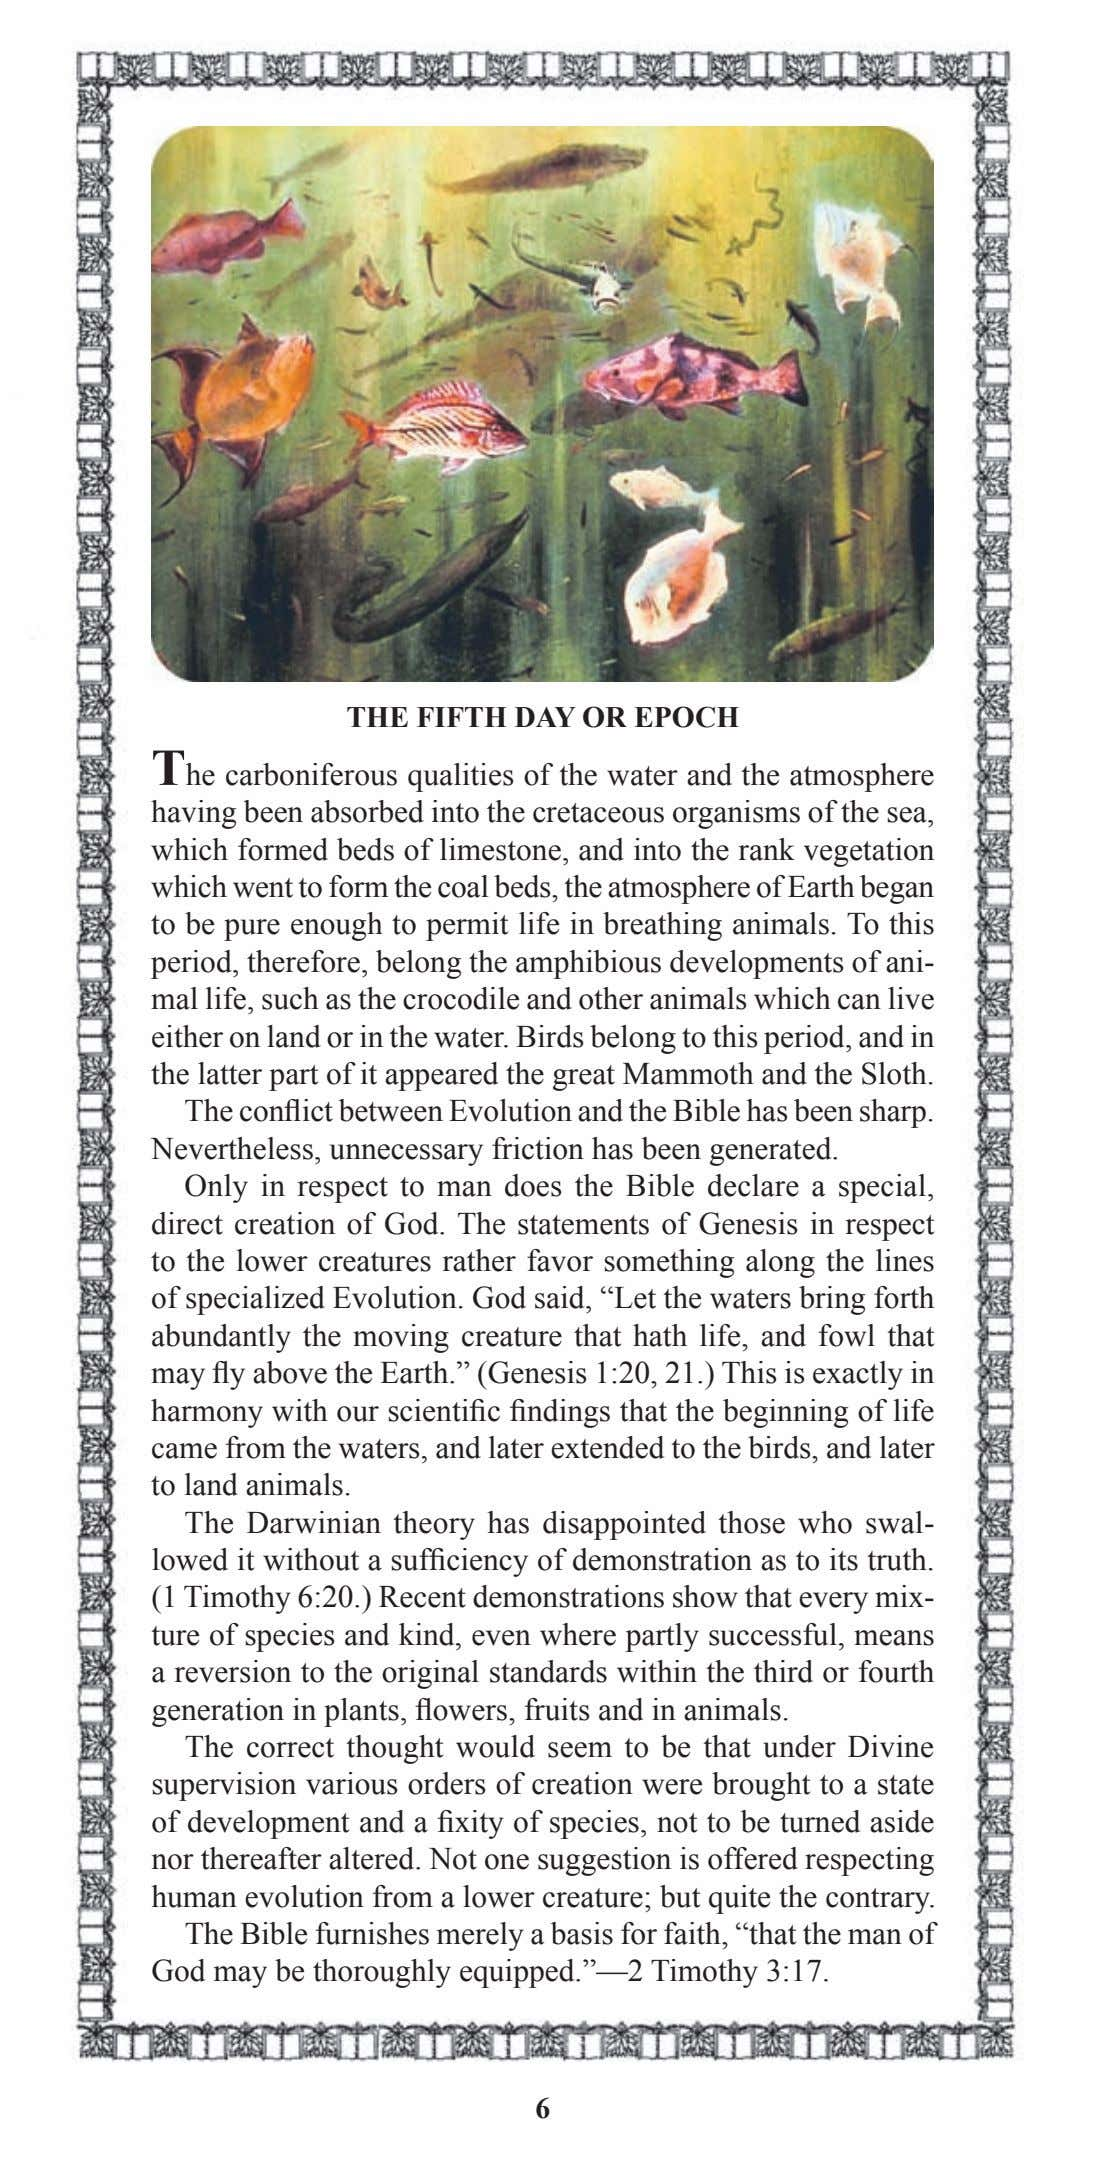 THE FIFTH DAY OR EPOCH The carboniferous qualities of the water and the atmosphere having